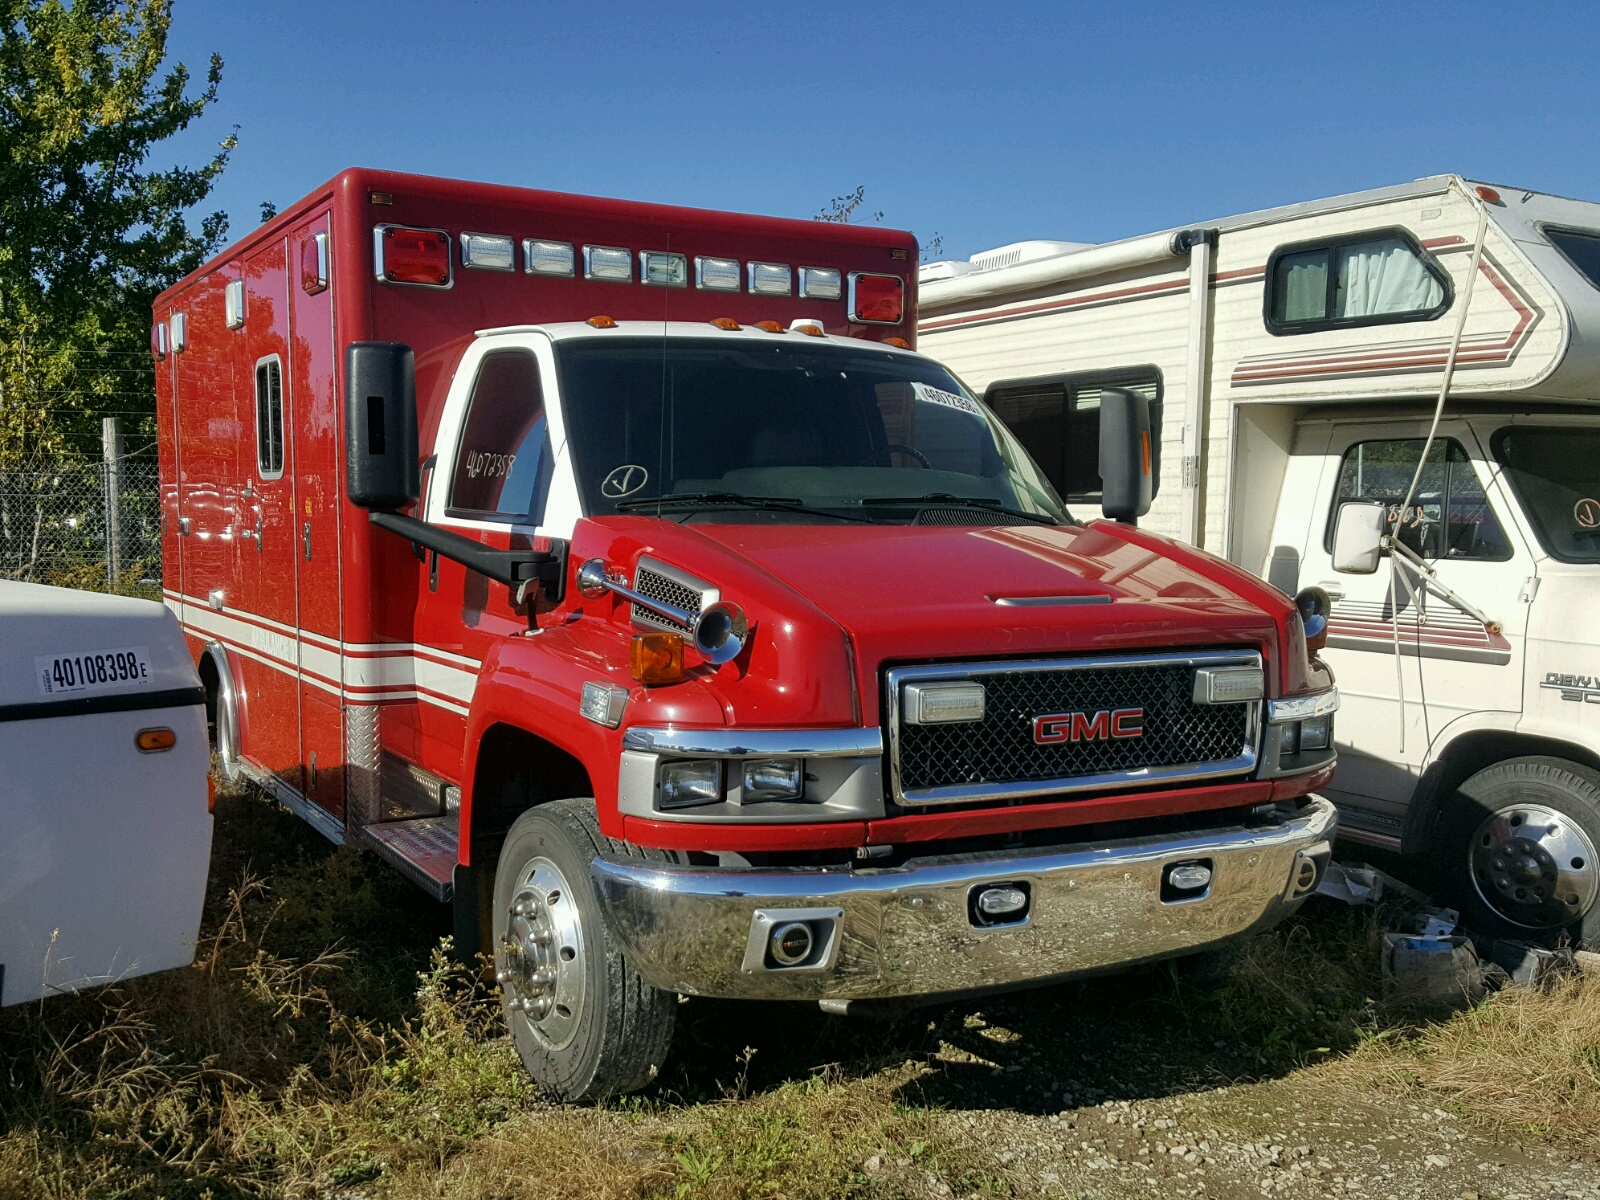 2009 Gmc C4500 C4v0 For Sale At Copart Indianapolis In Lot 46072358 Topkick Chevy Kodiak